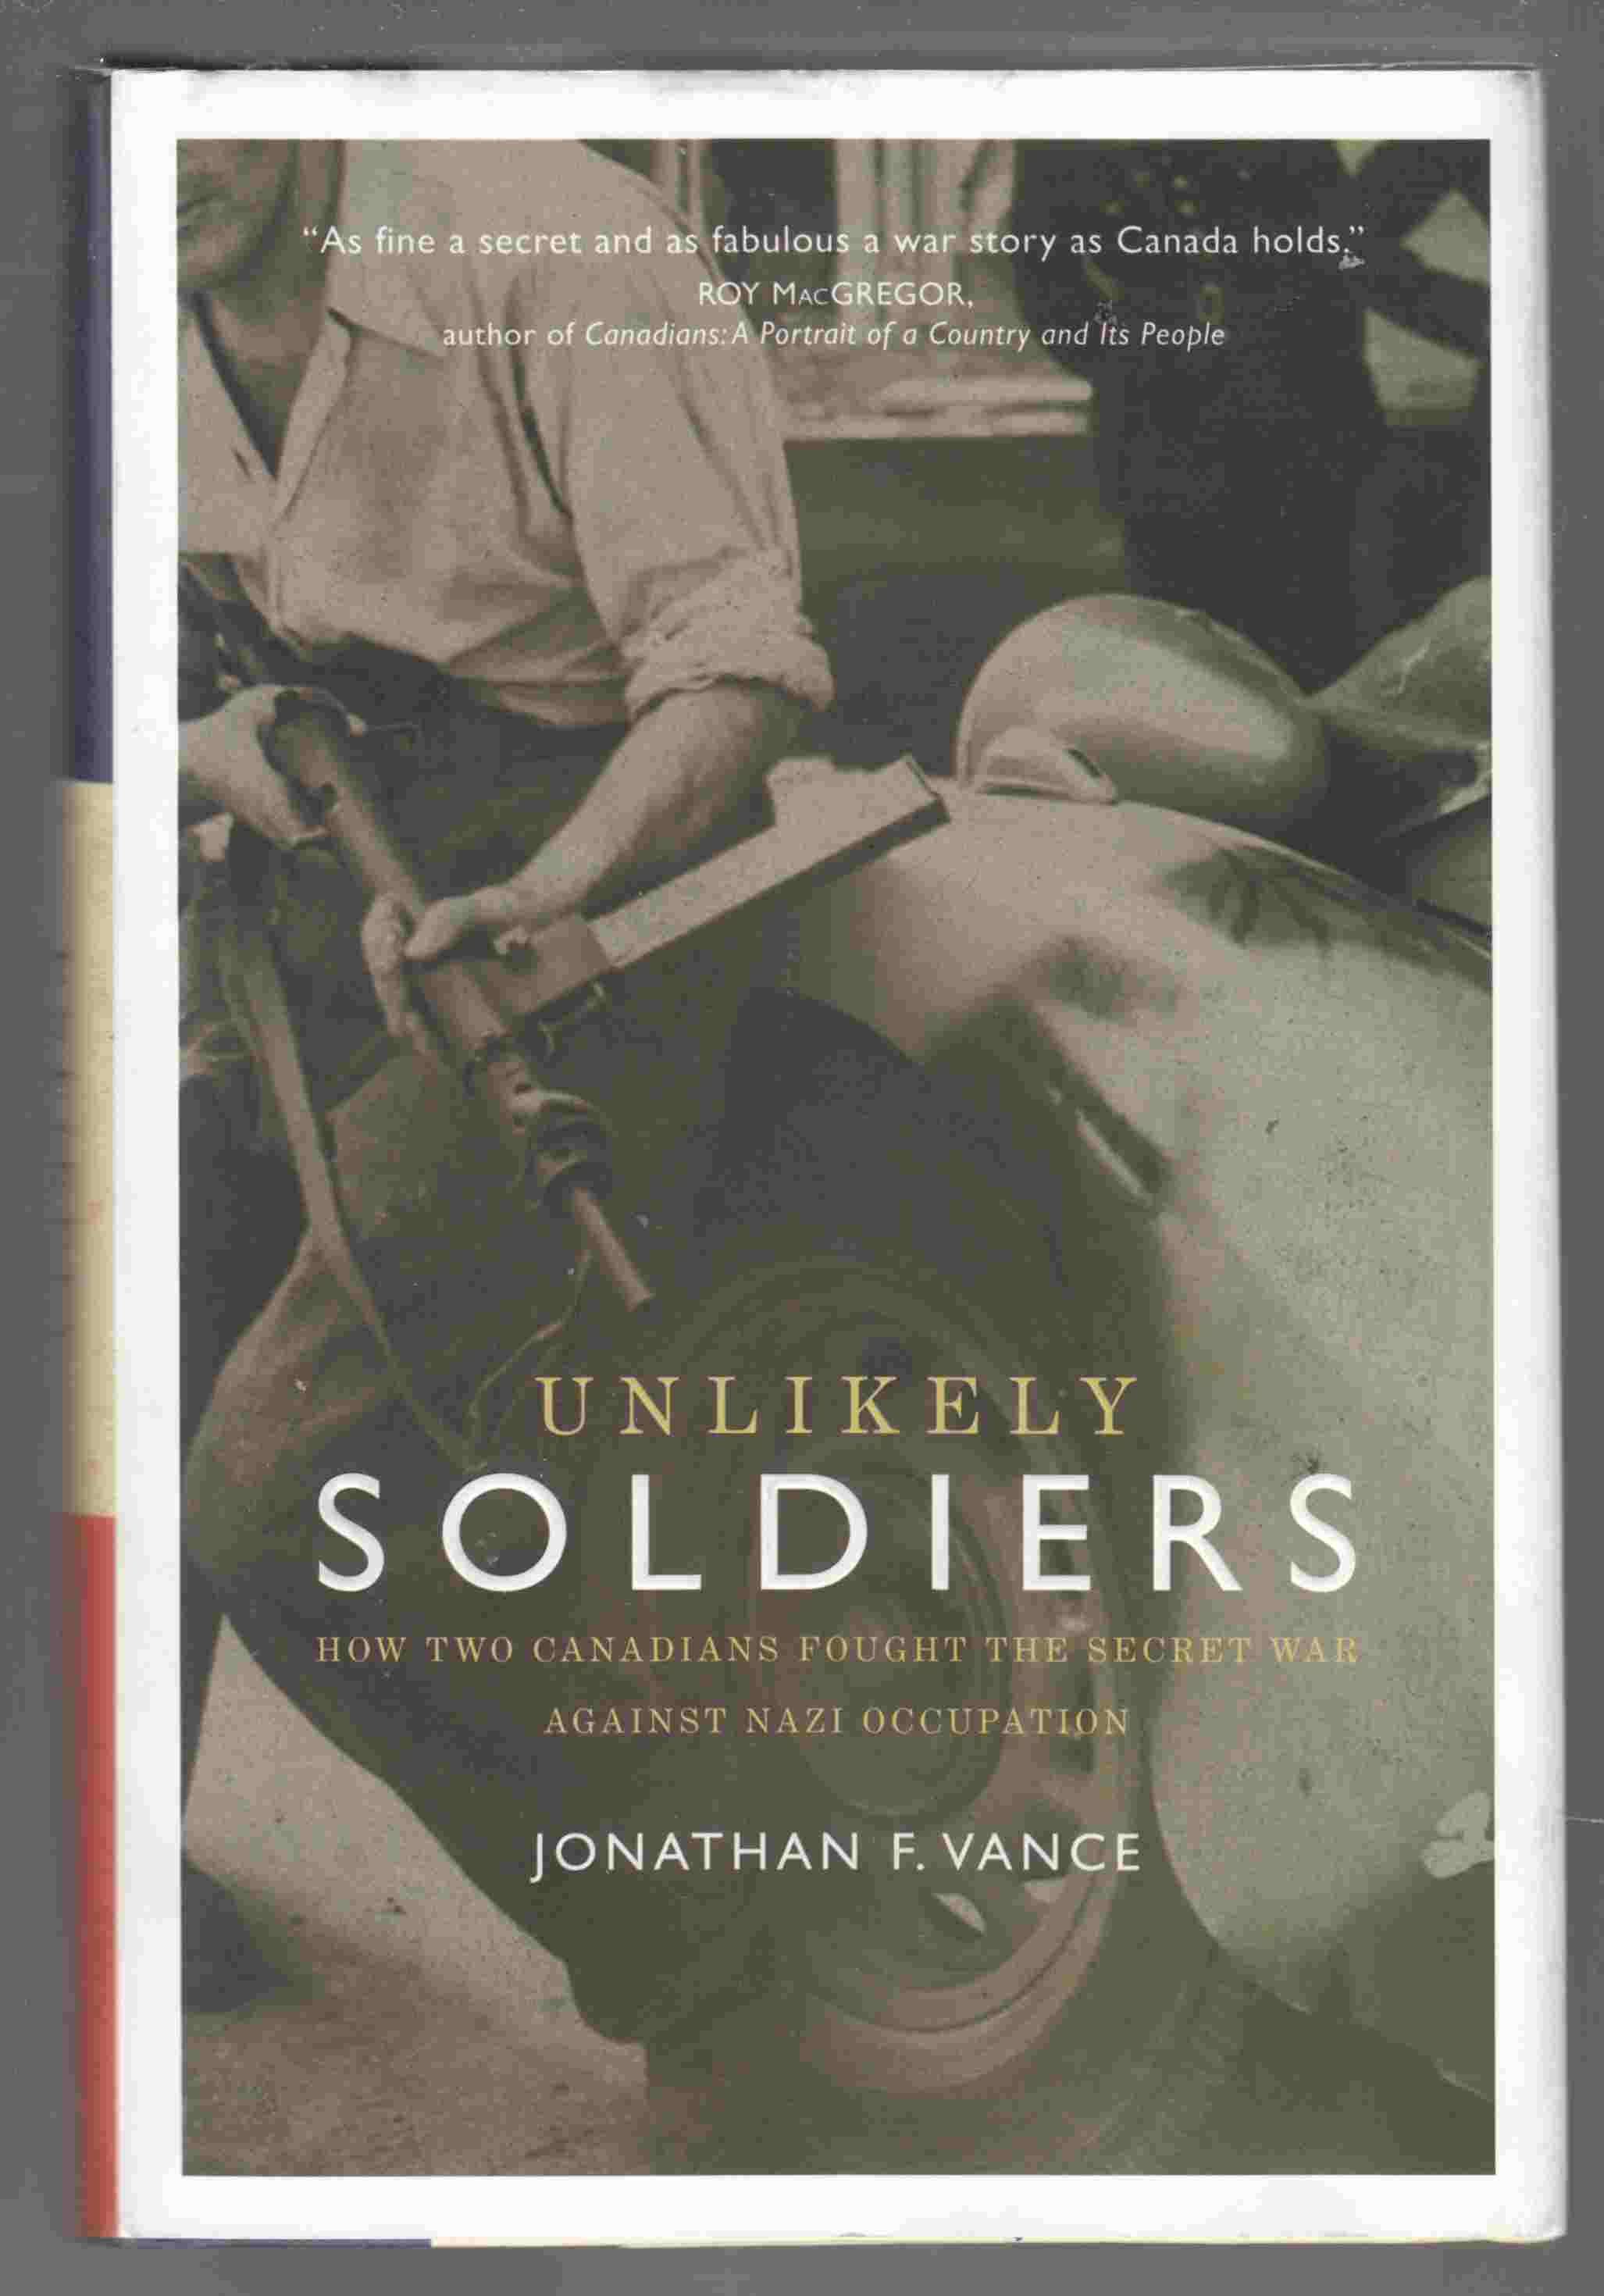 Image for Unlikely Soldiers How Two Canadians Fought the Secret War Against Nazi Occupation